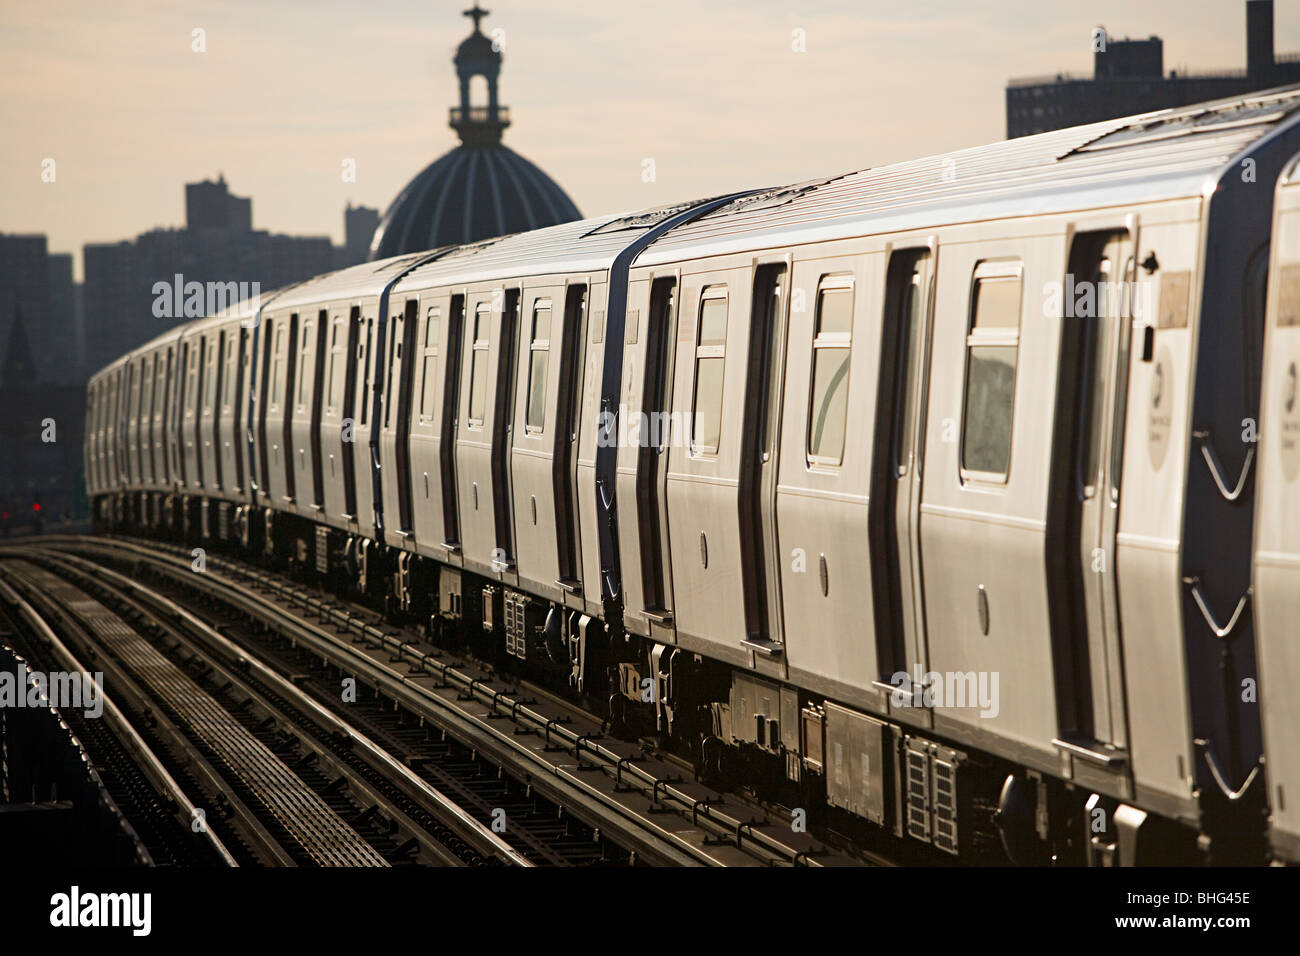 New york subway train - Stock Image